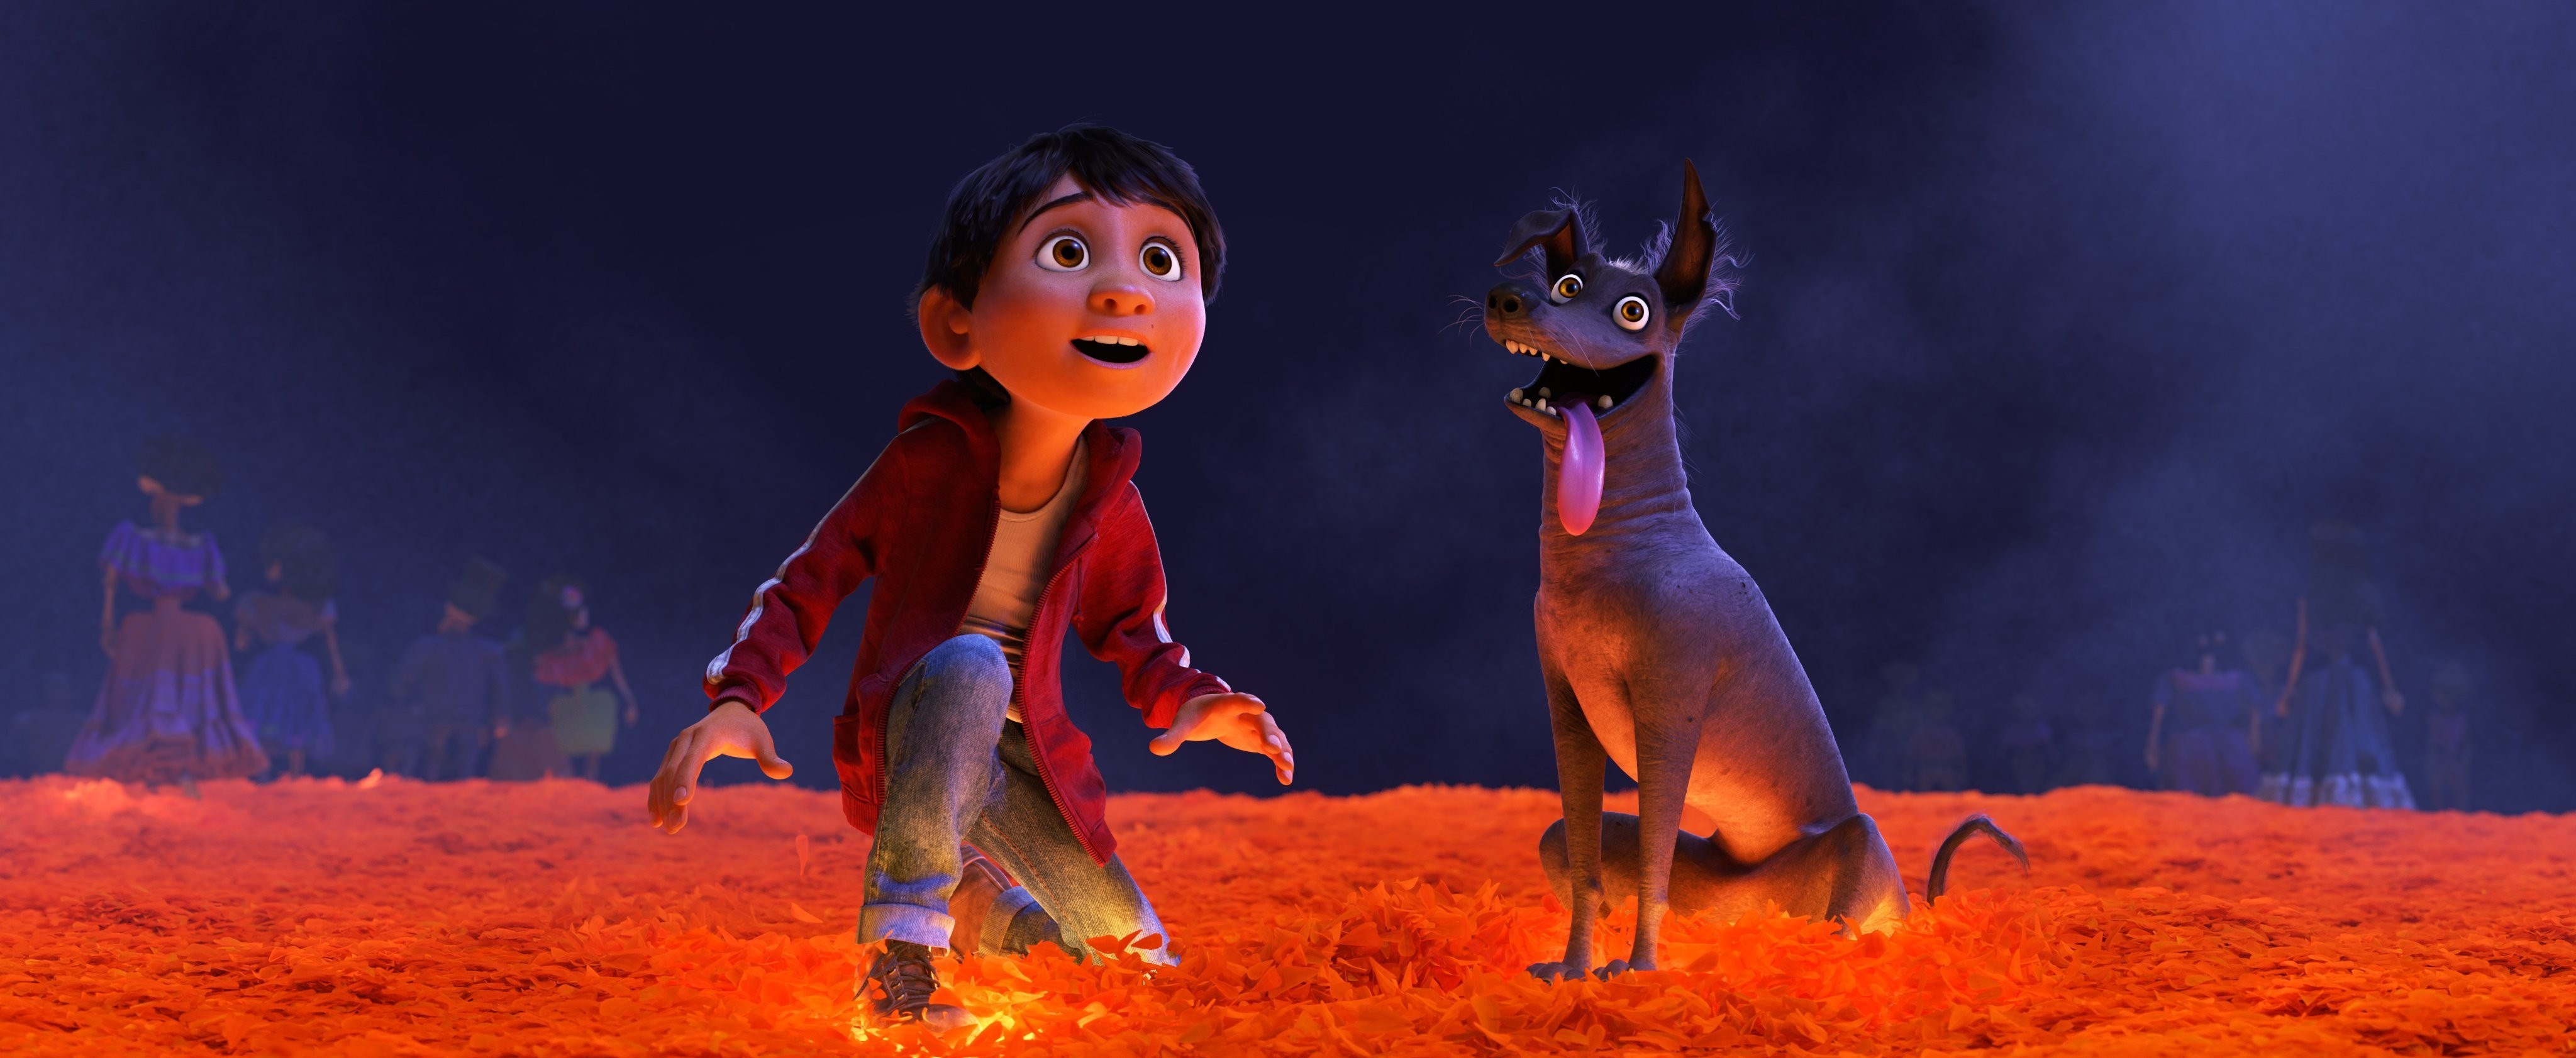 disney pixar coco images coco hd wallpaper and background photos